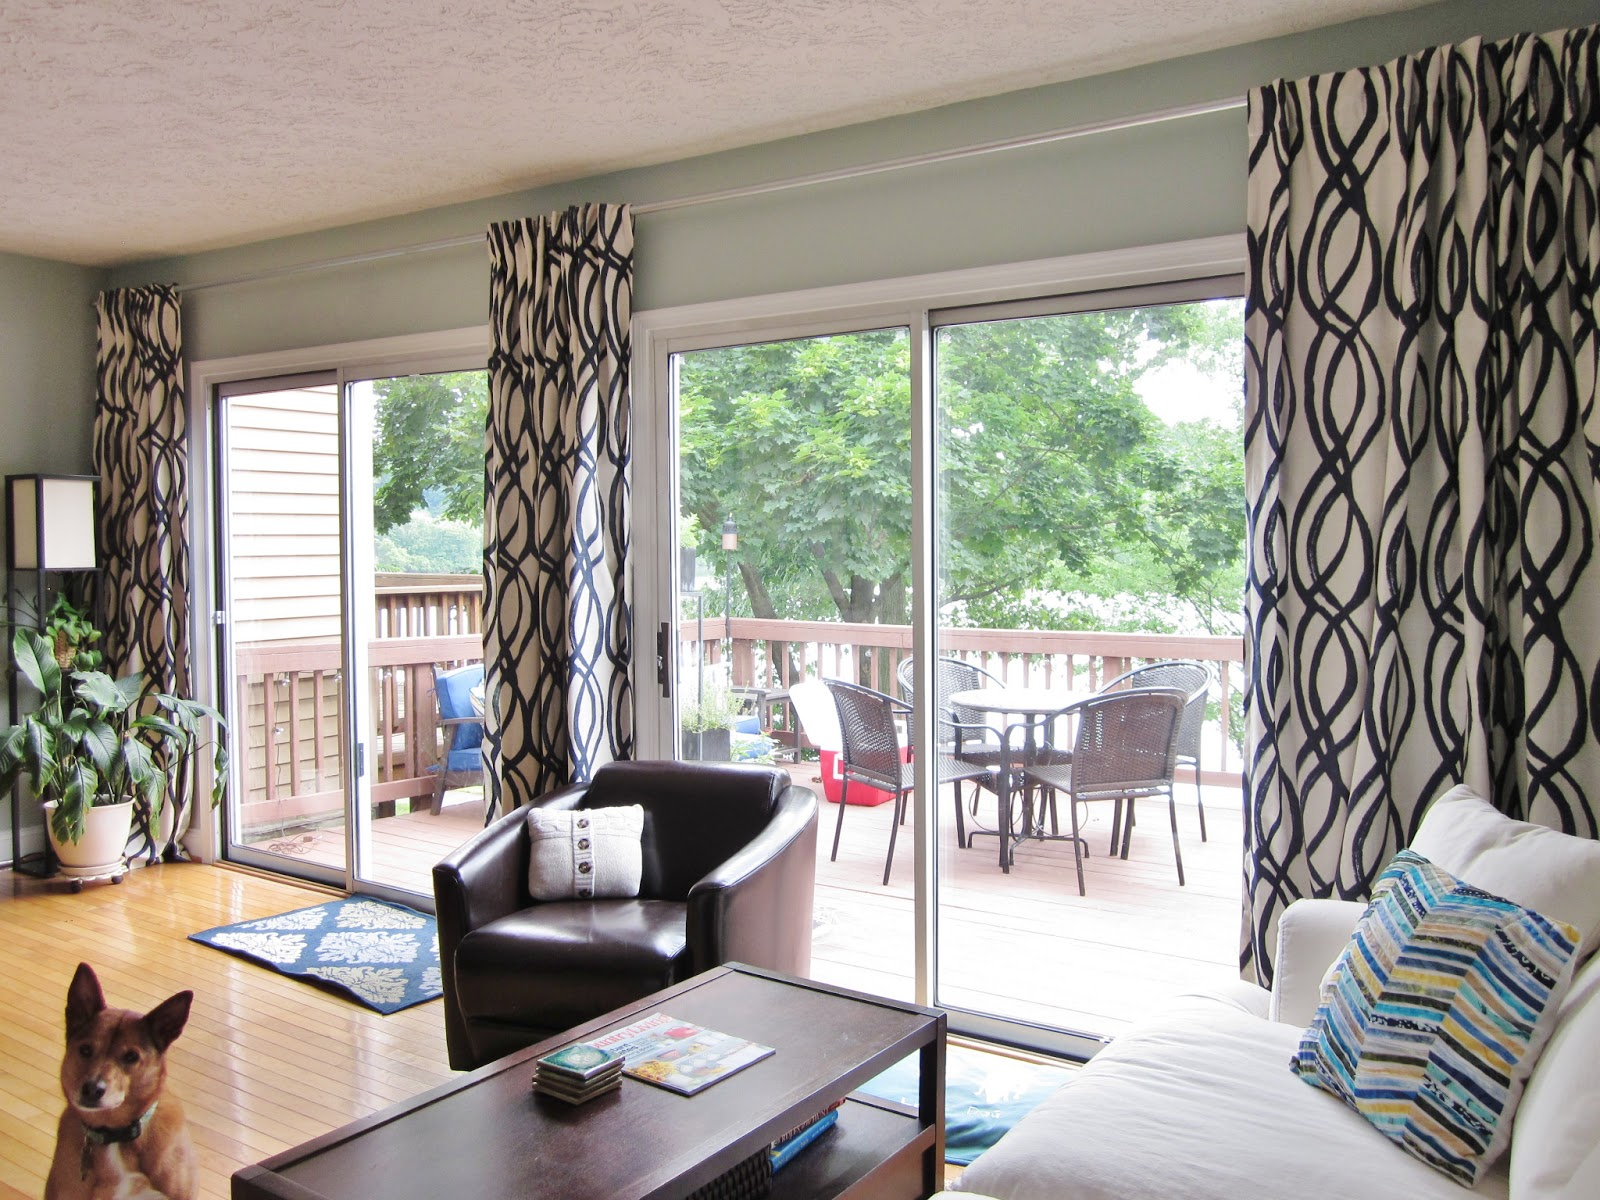 Awesome Extra Long Curtain Rods For Sliding Gl Door With Wooden Laminate Floor And Coffee